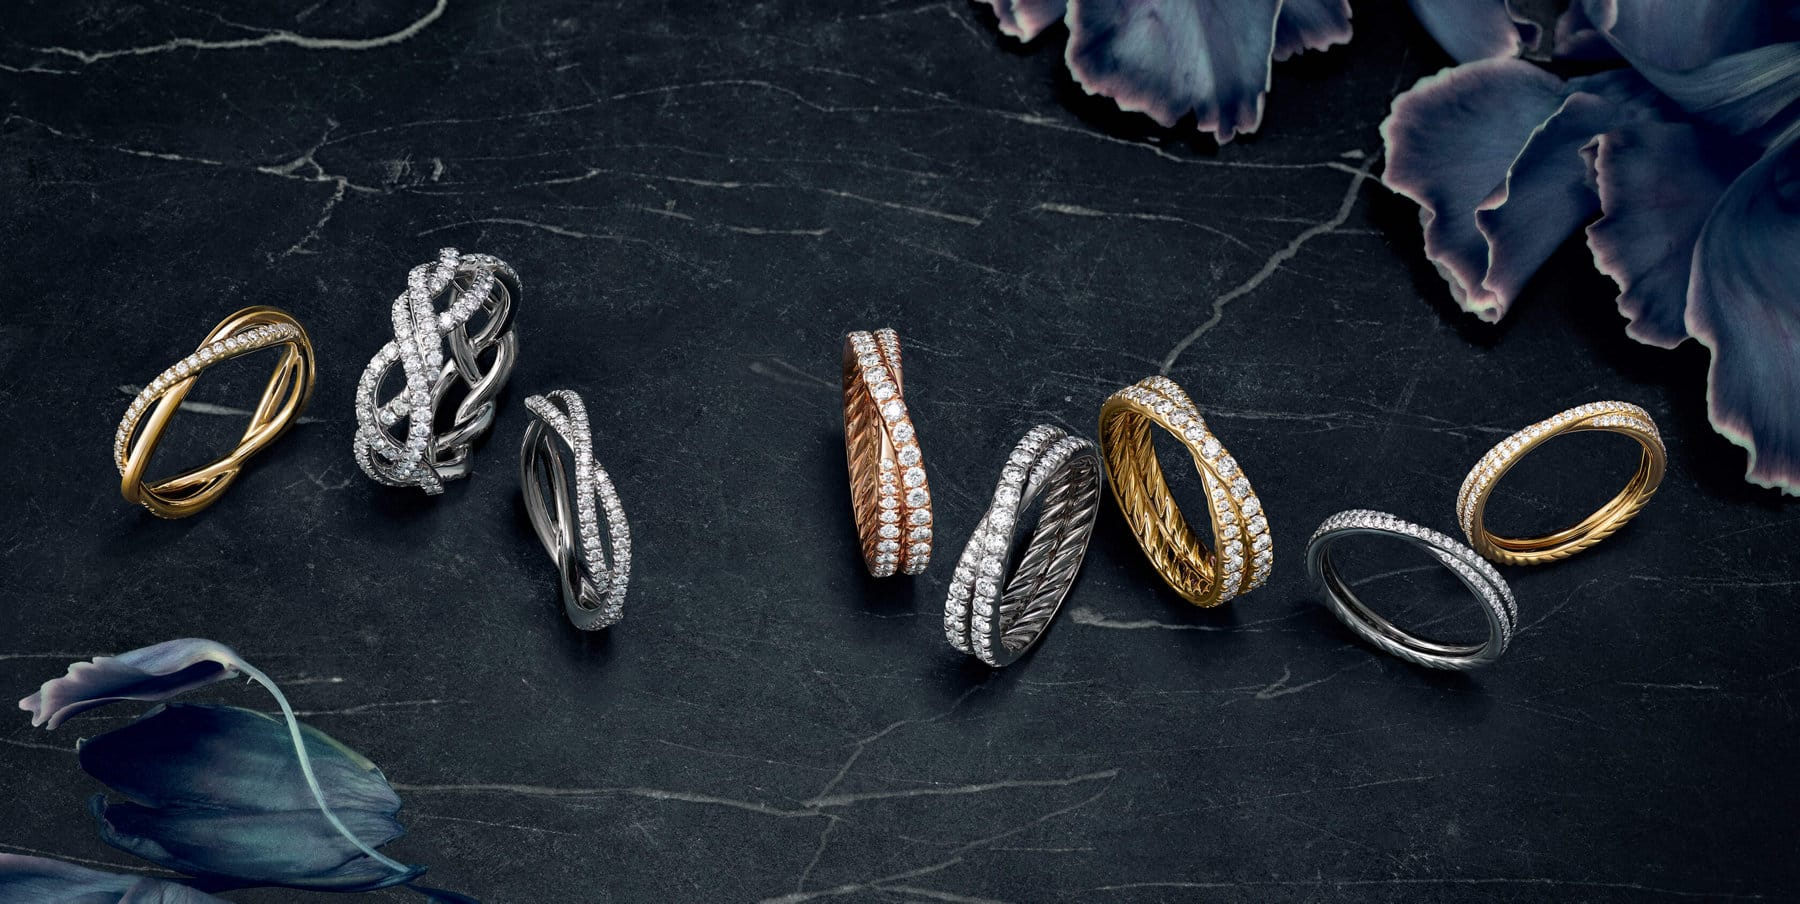 A color photograph shows eight David Yurman women's wedding bands from the DY Lanai, DY Wisteria and DY Crossover   collections. The rings sit atop a dark, marbled stone surface with flowers petals on either side.